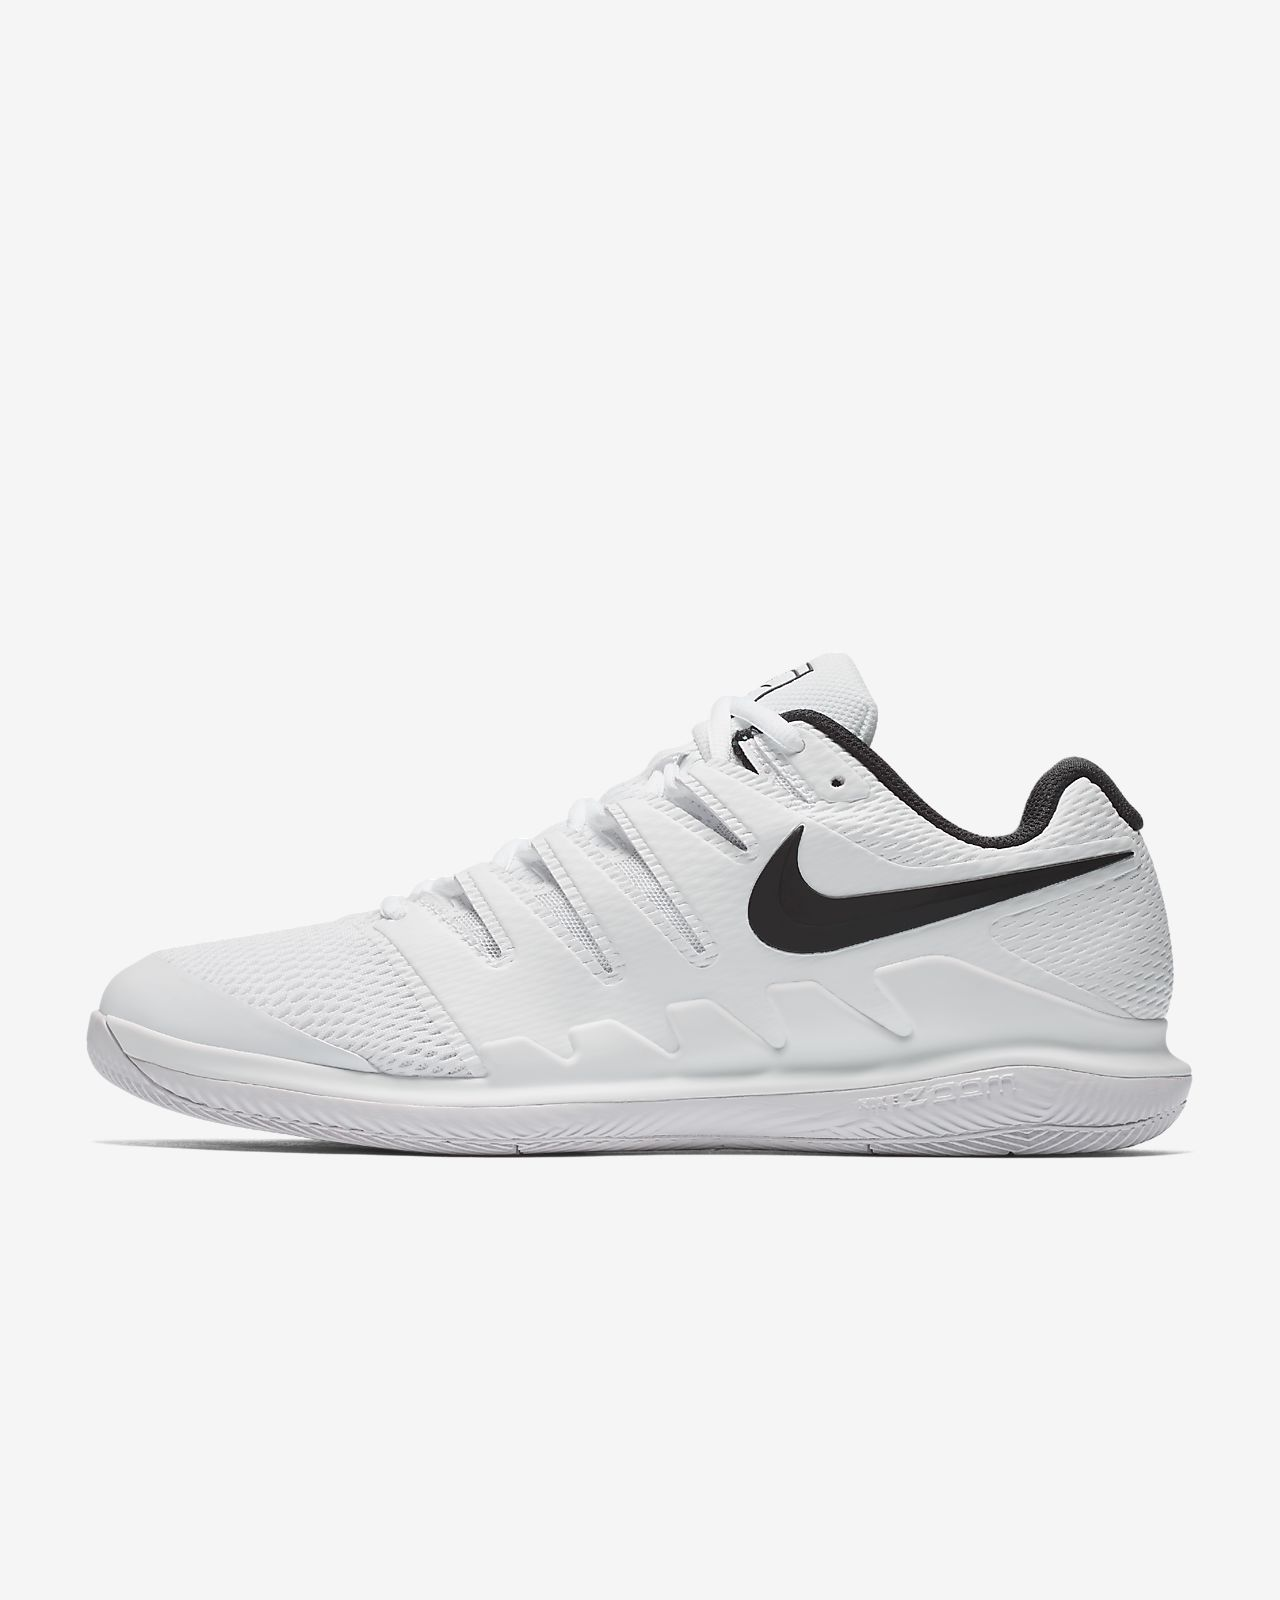 43af0e258663 Nike Air Zoom Vapor X HC Men s Tennis Shoe. Nike.com AU